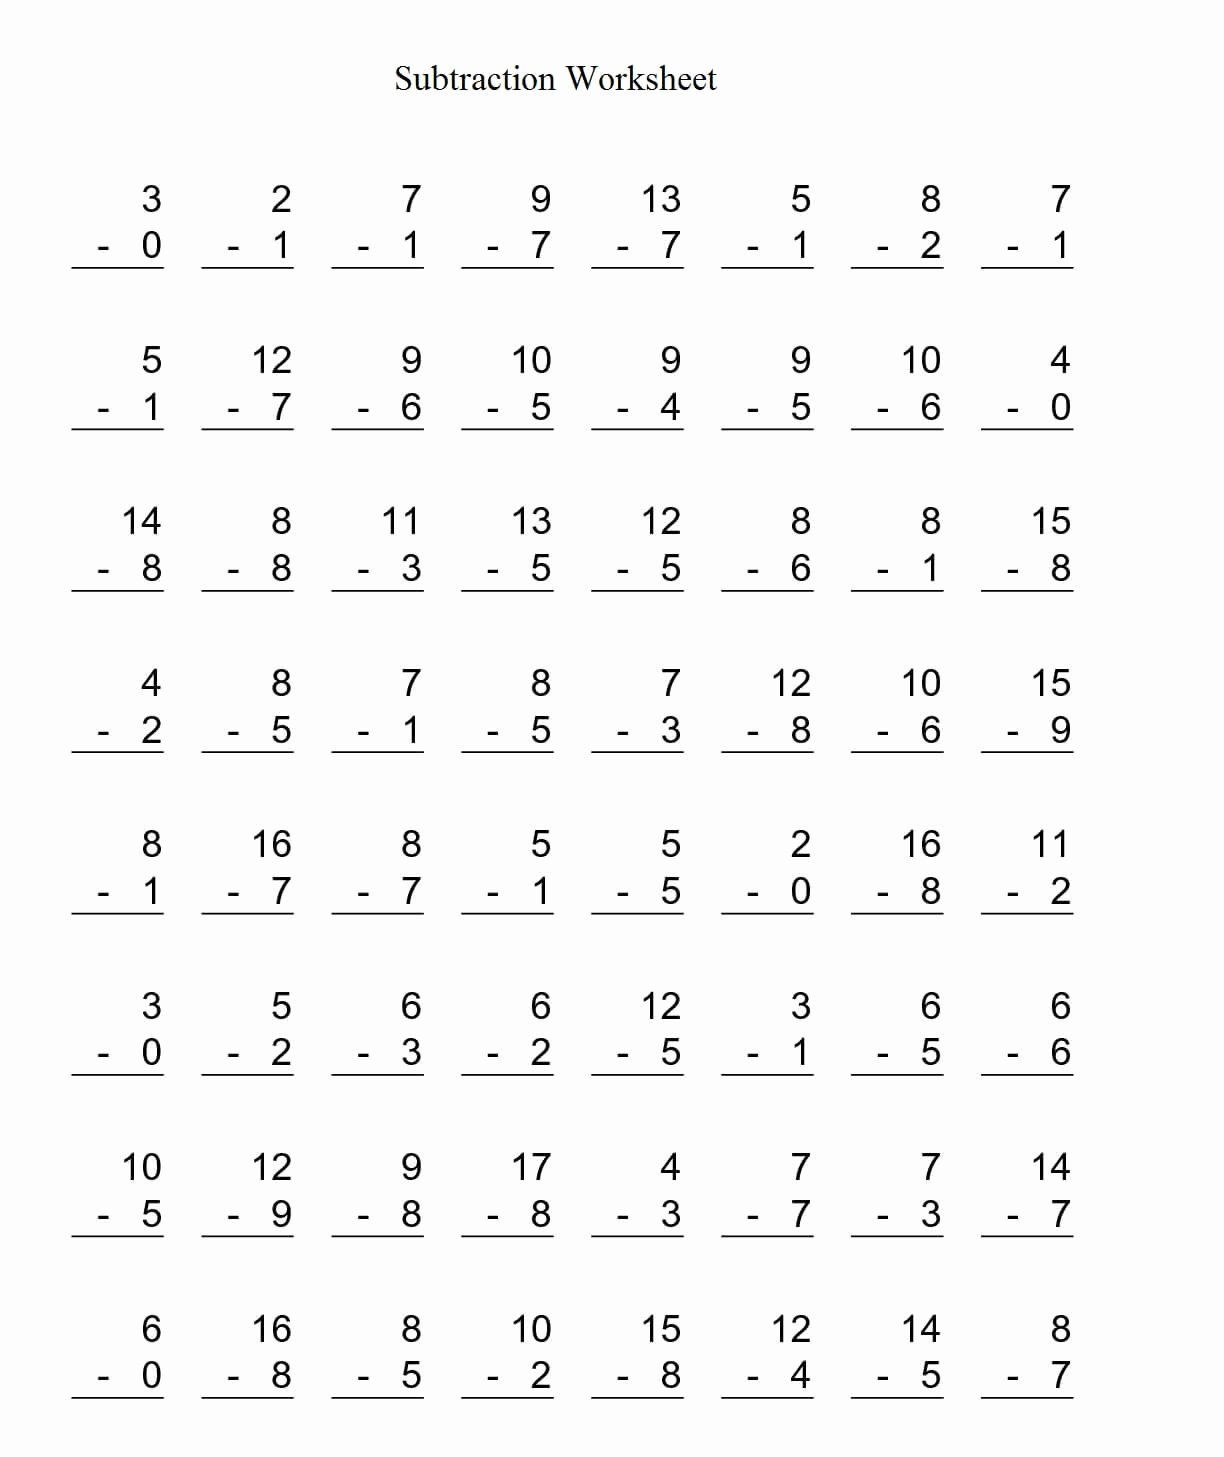 Subtraction Worksheet for Kindergarten Best Of Free Printable Kindergarten Math Worksheets